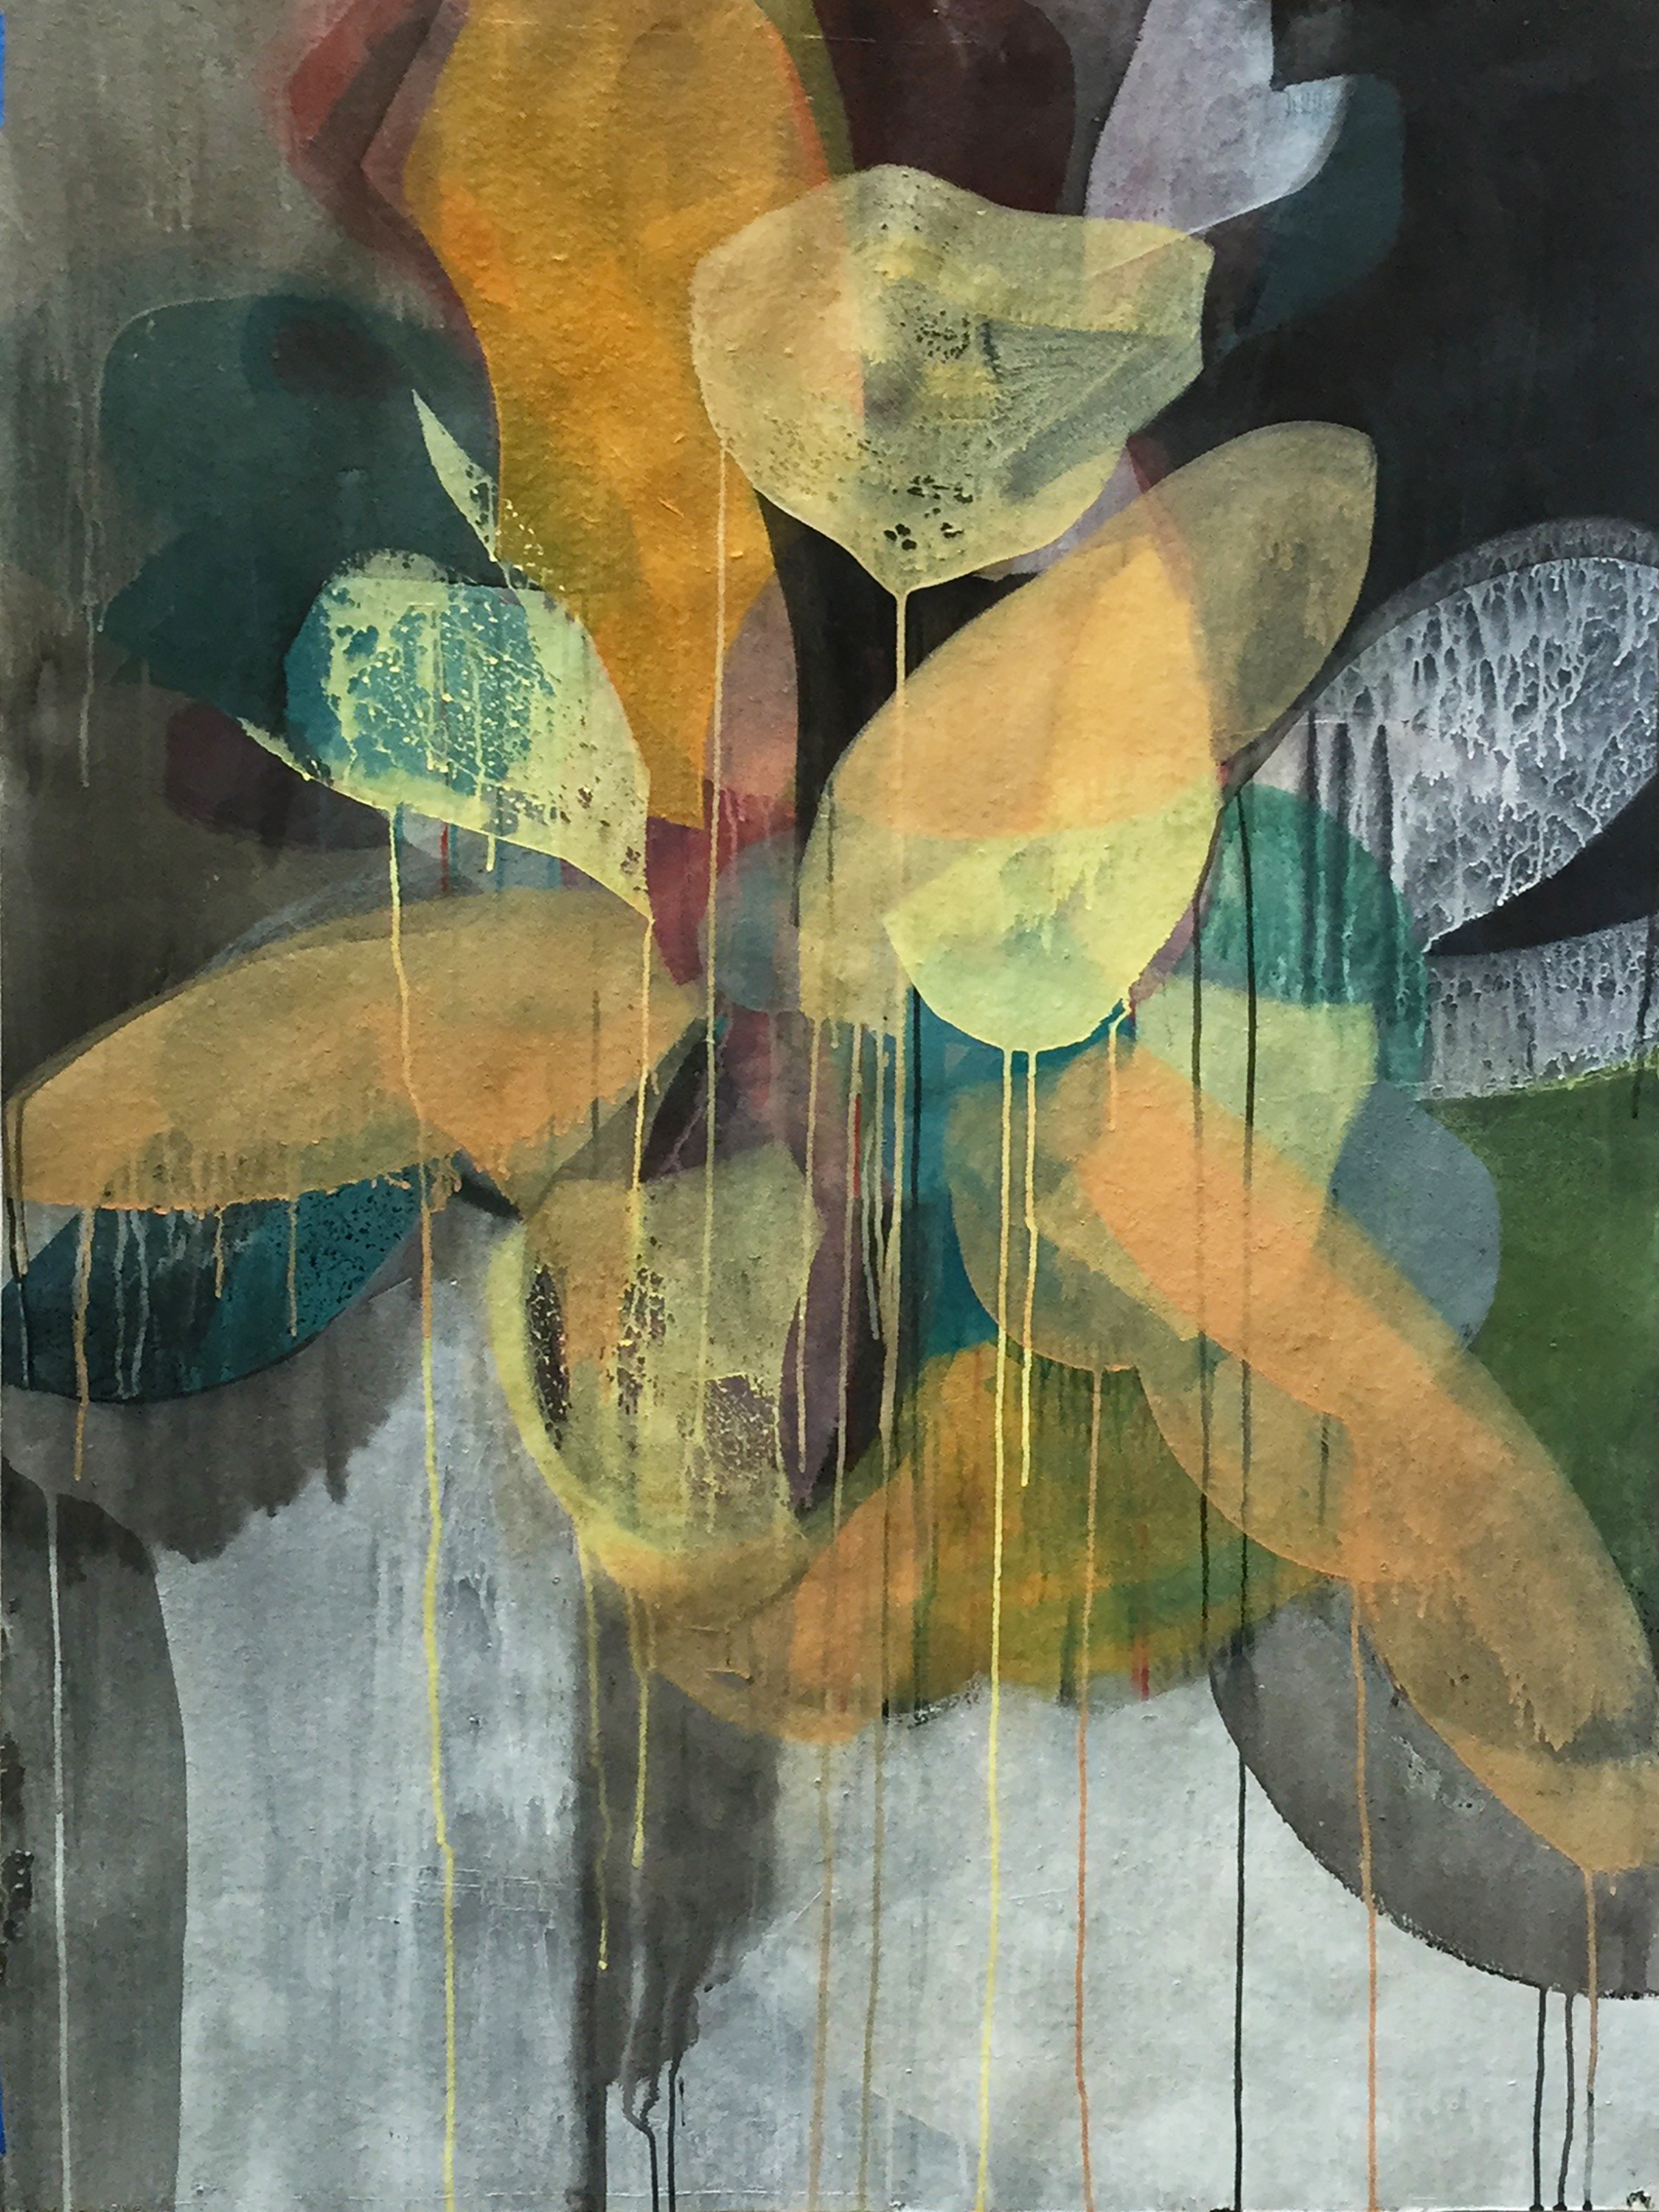 "(sufa15) casar peony, 49"" x 36"", water-based media on paper, 2015"